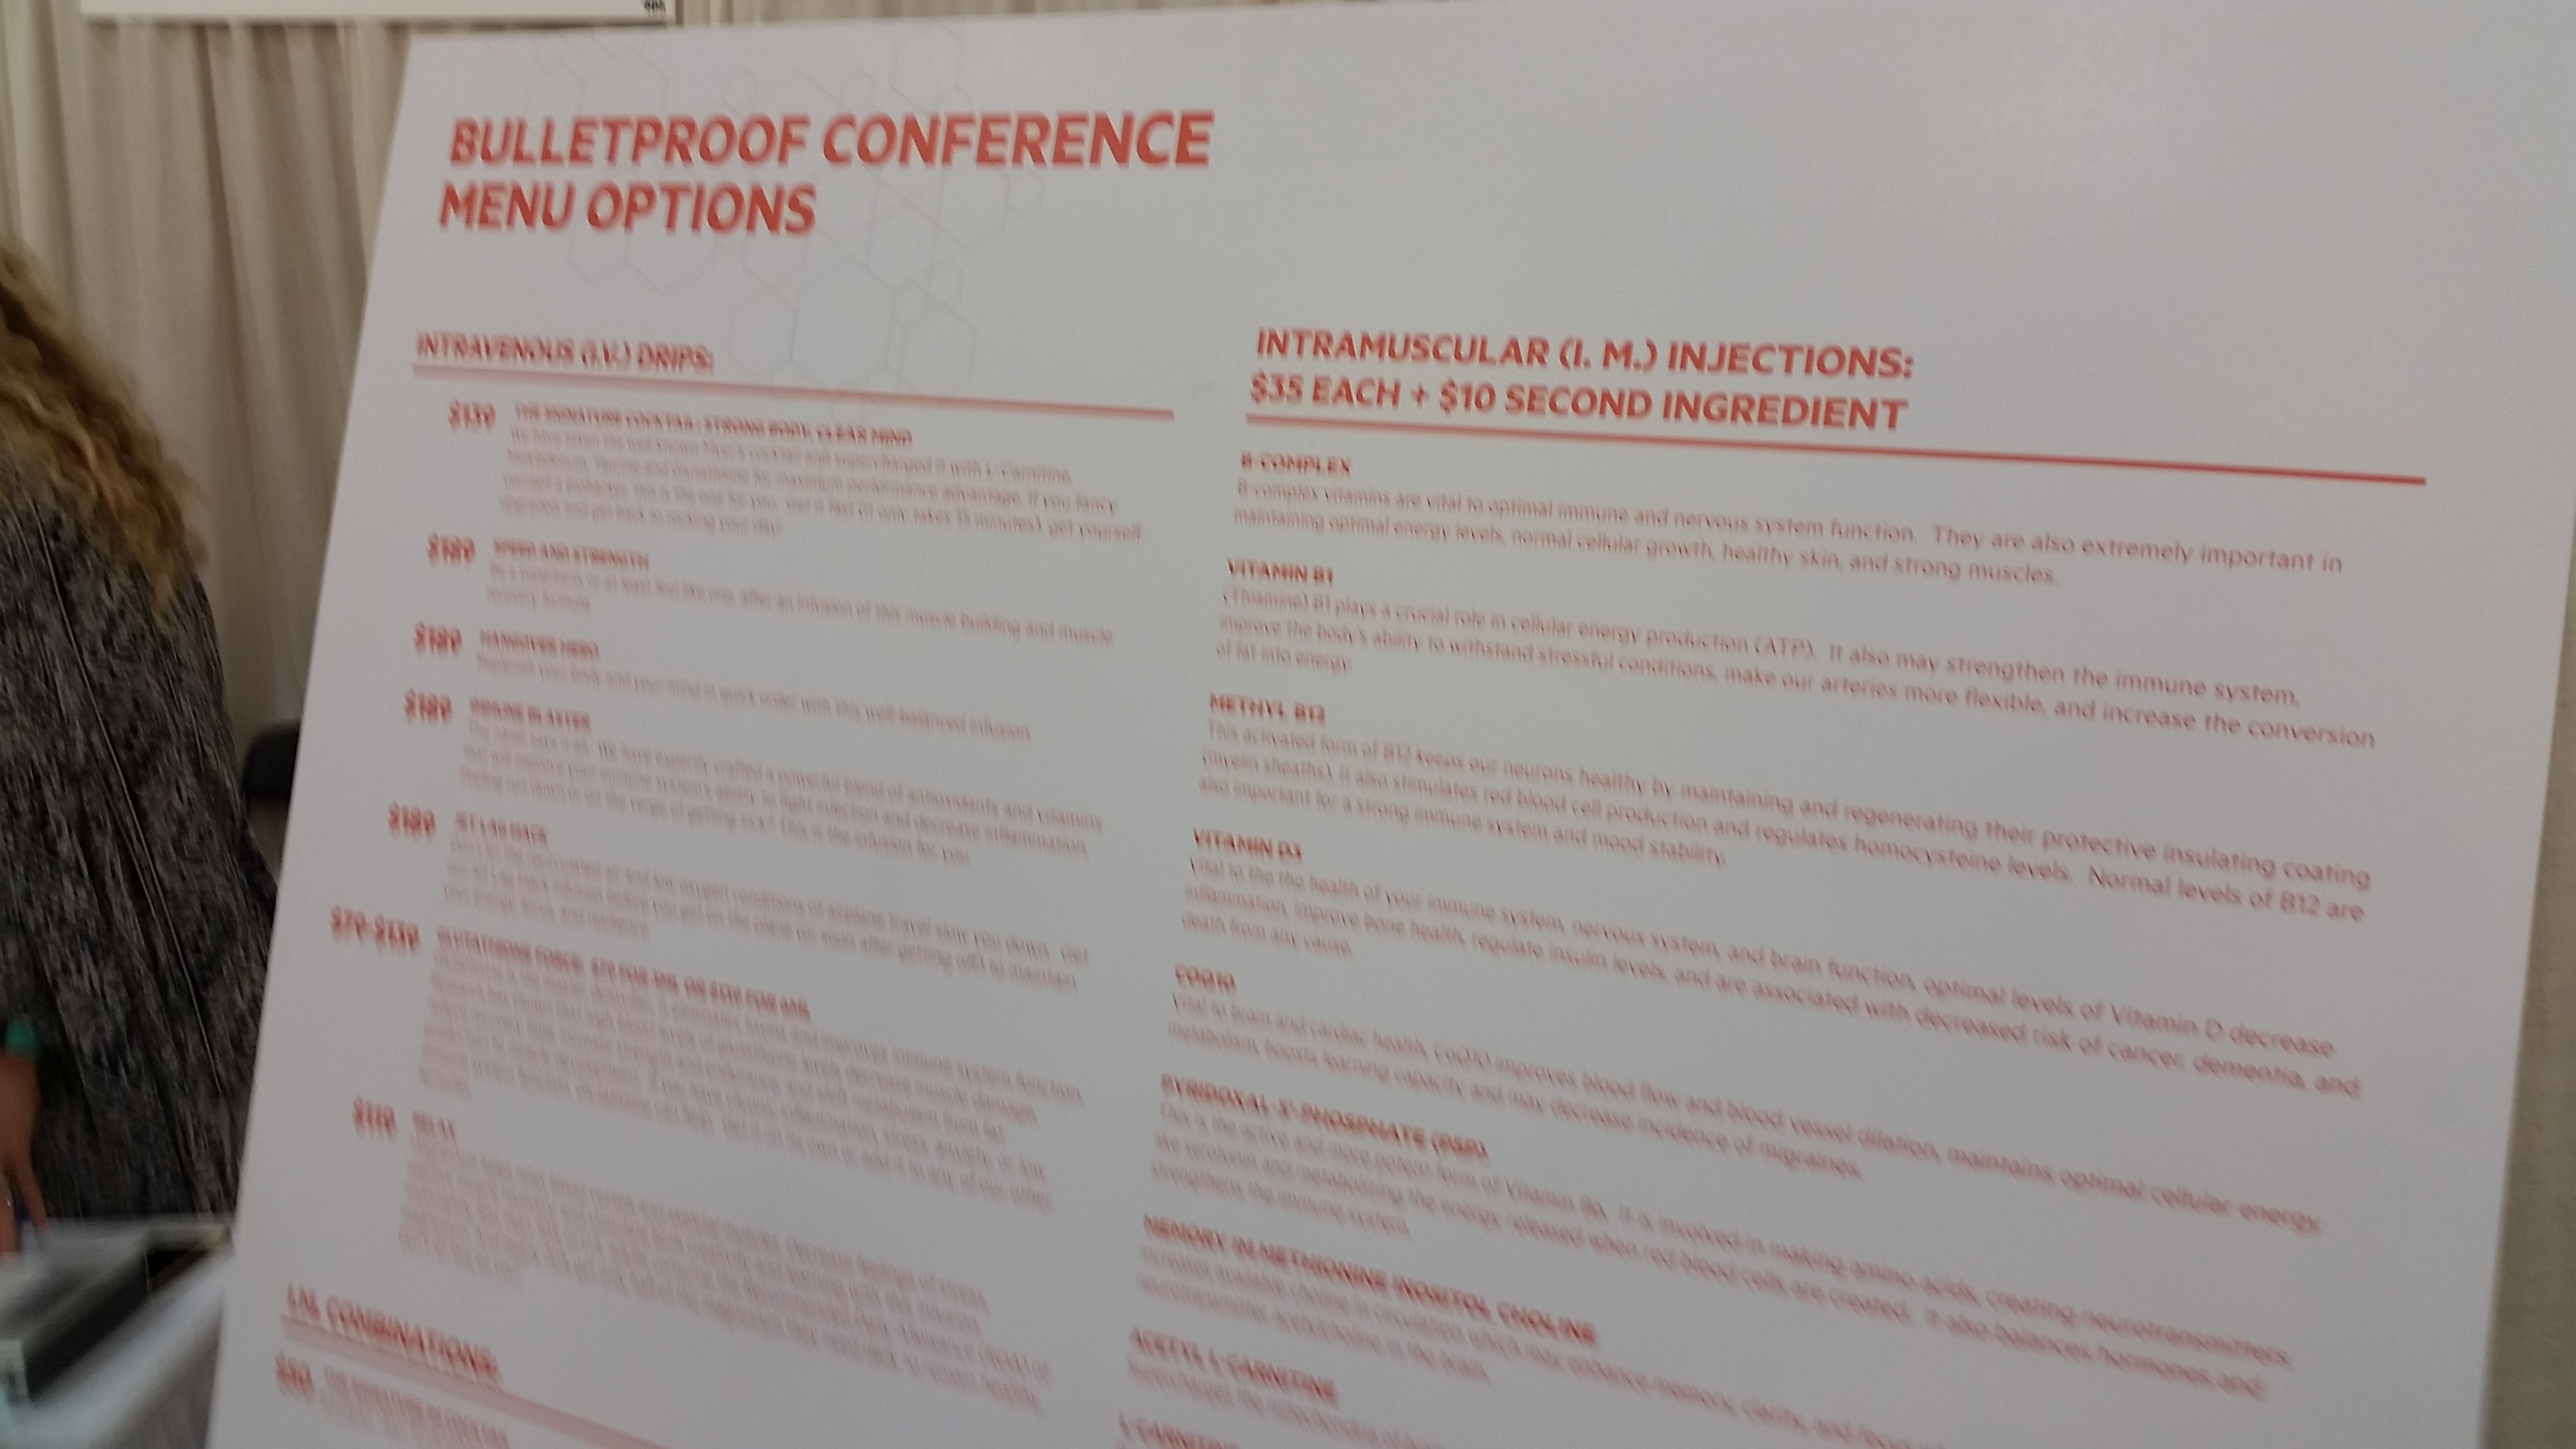 Menu options for the clinic at the Bulletproof Conference.